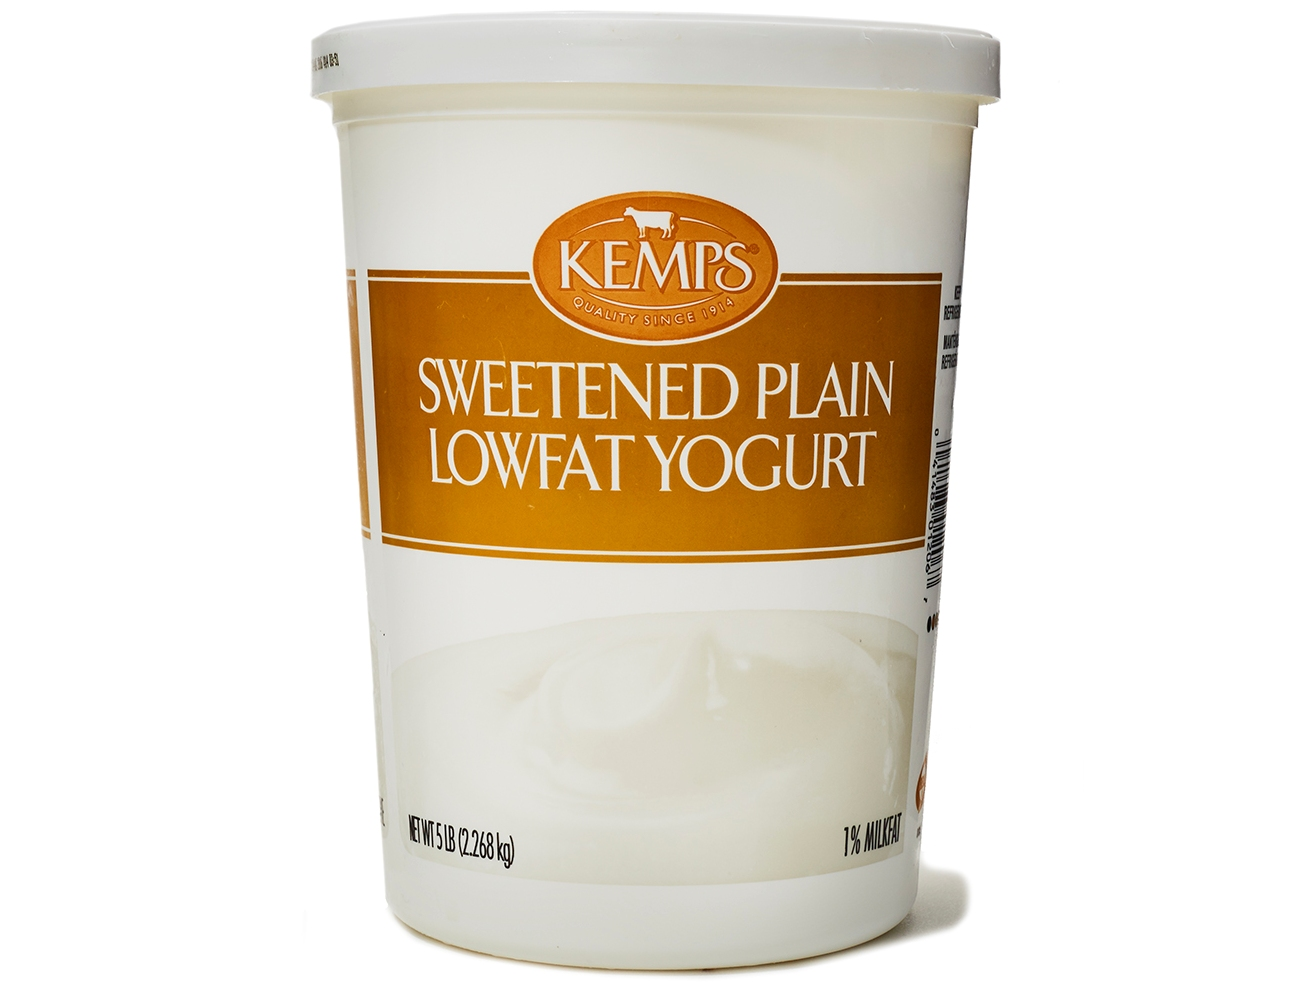 Kemps Sweetened Plain Lowfat Yogurt